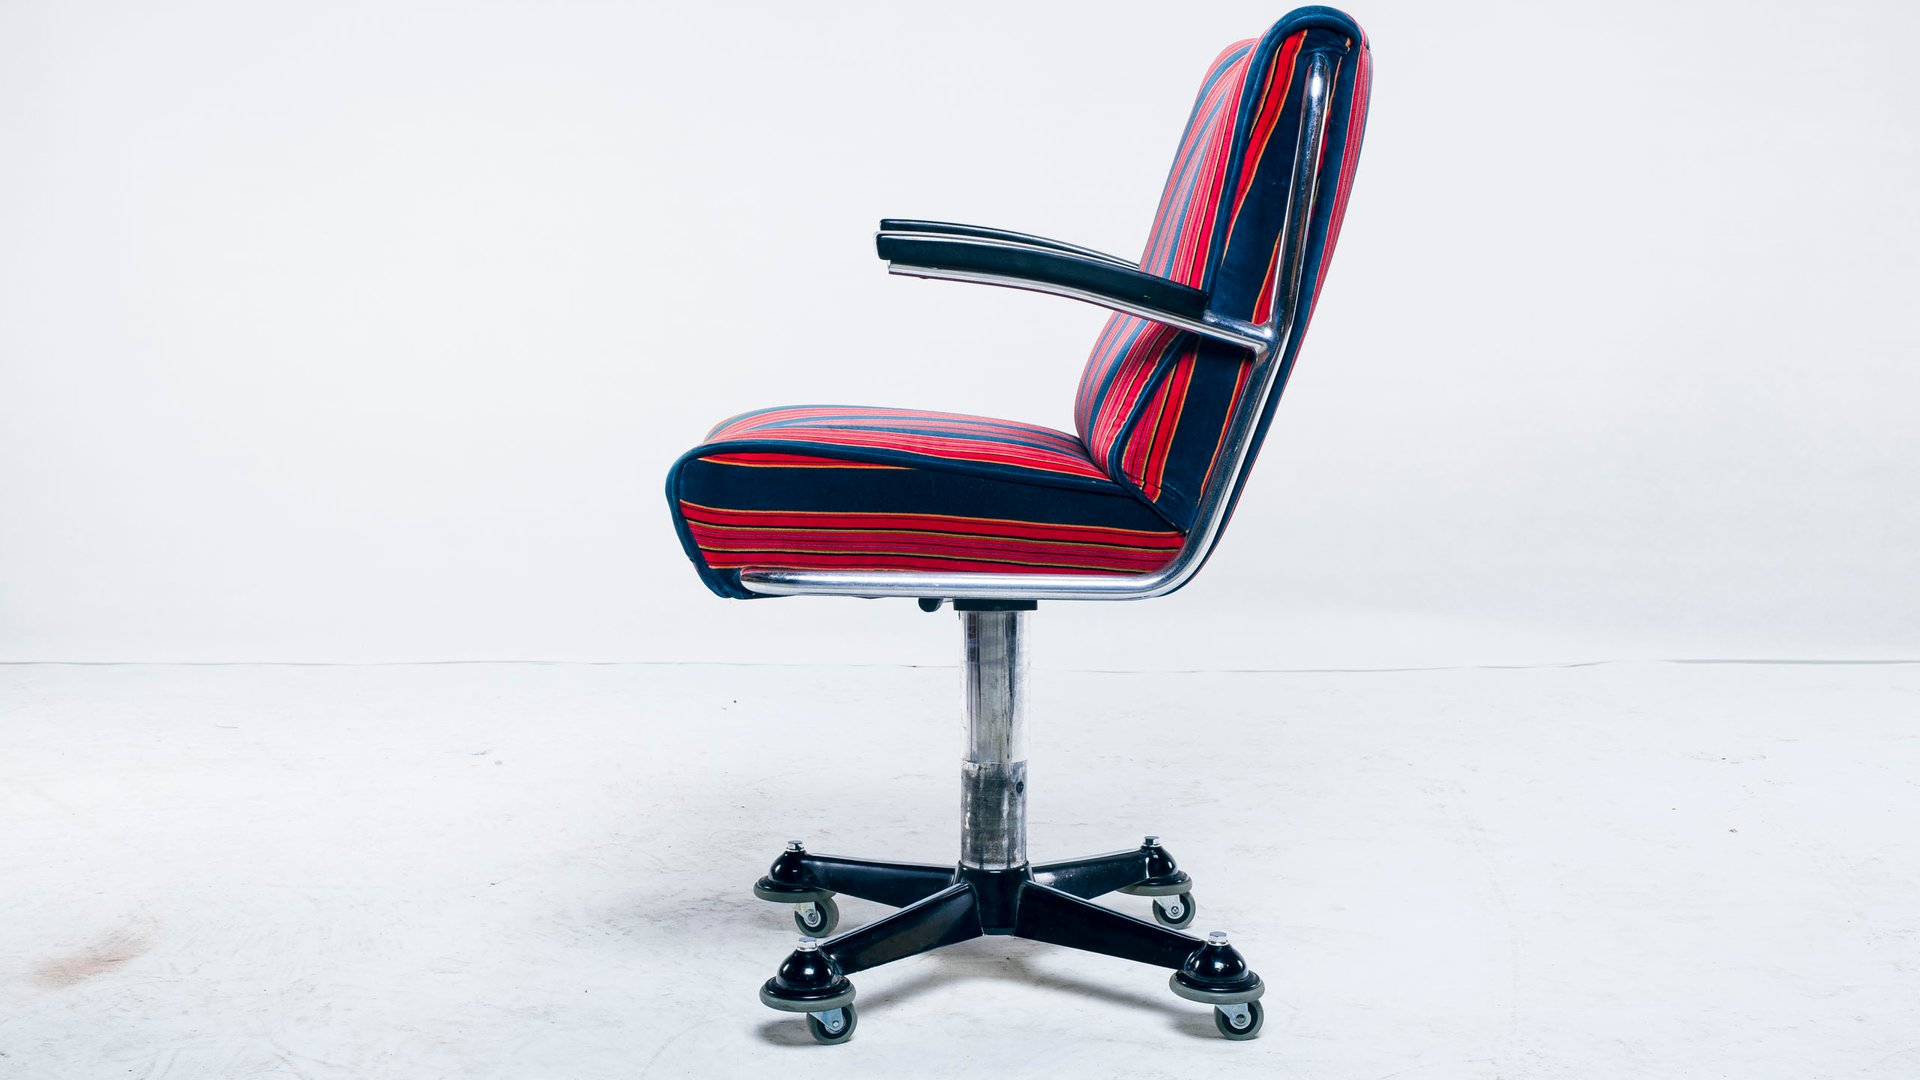 bauhaus swivel chair zero gravity recliner dark blue from mauser werke waldeck 1950s for price per piece